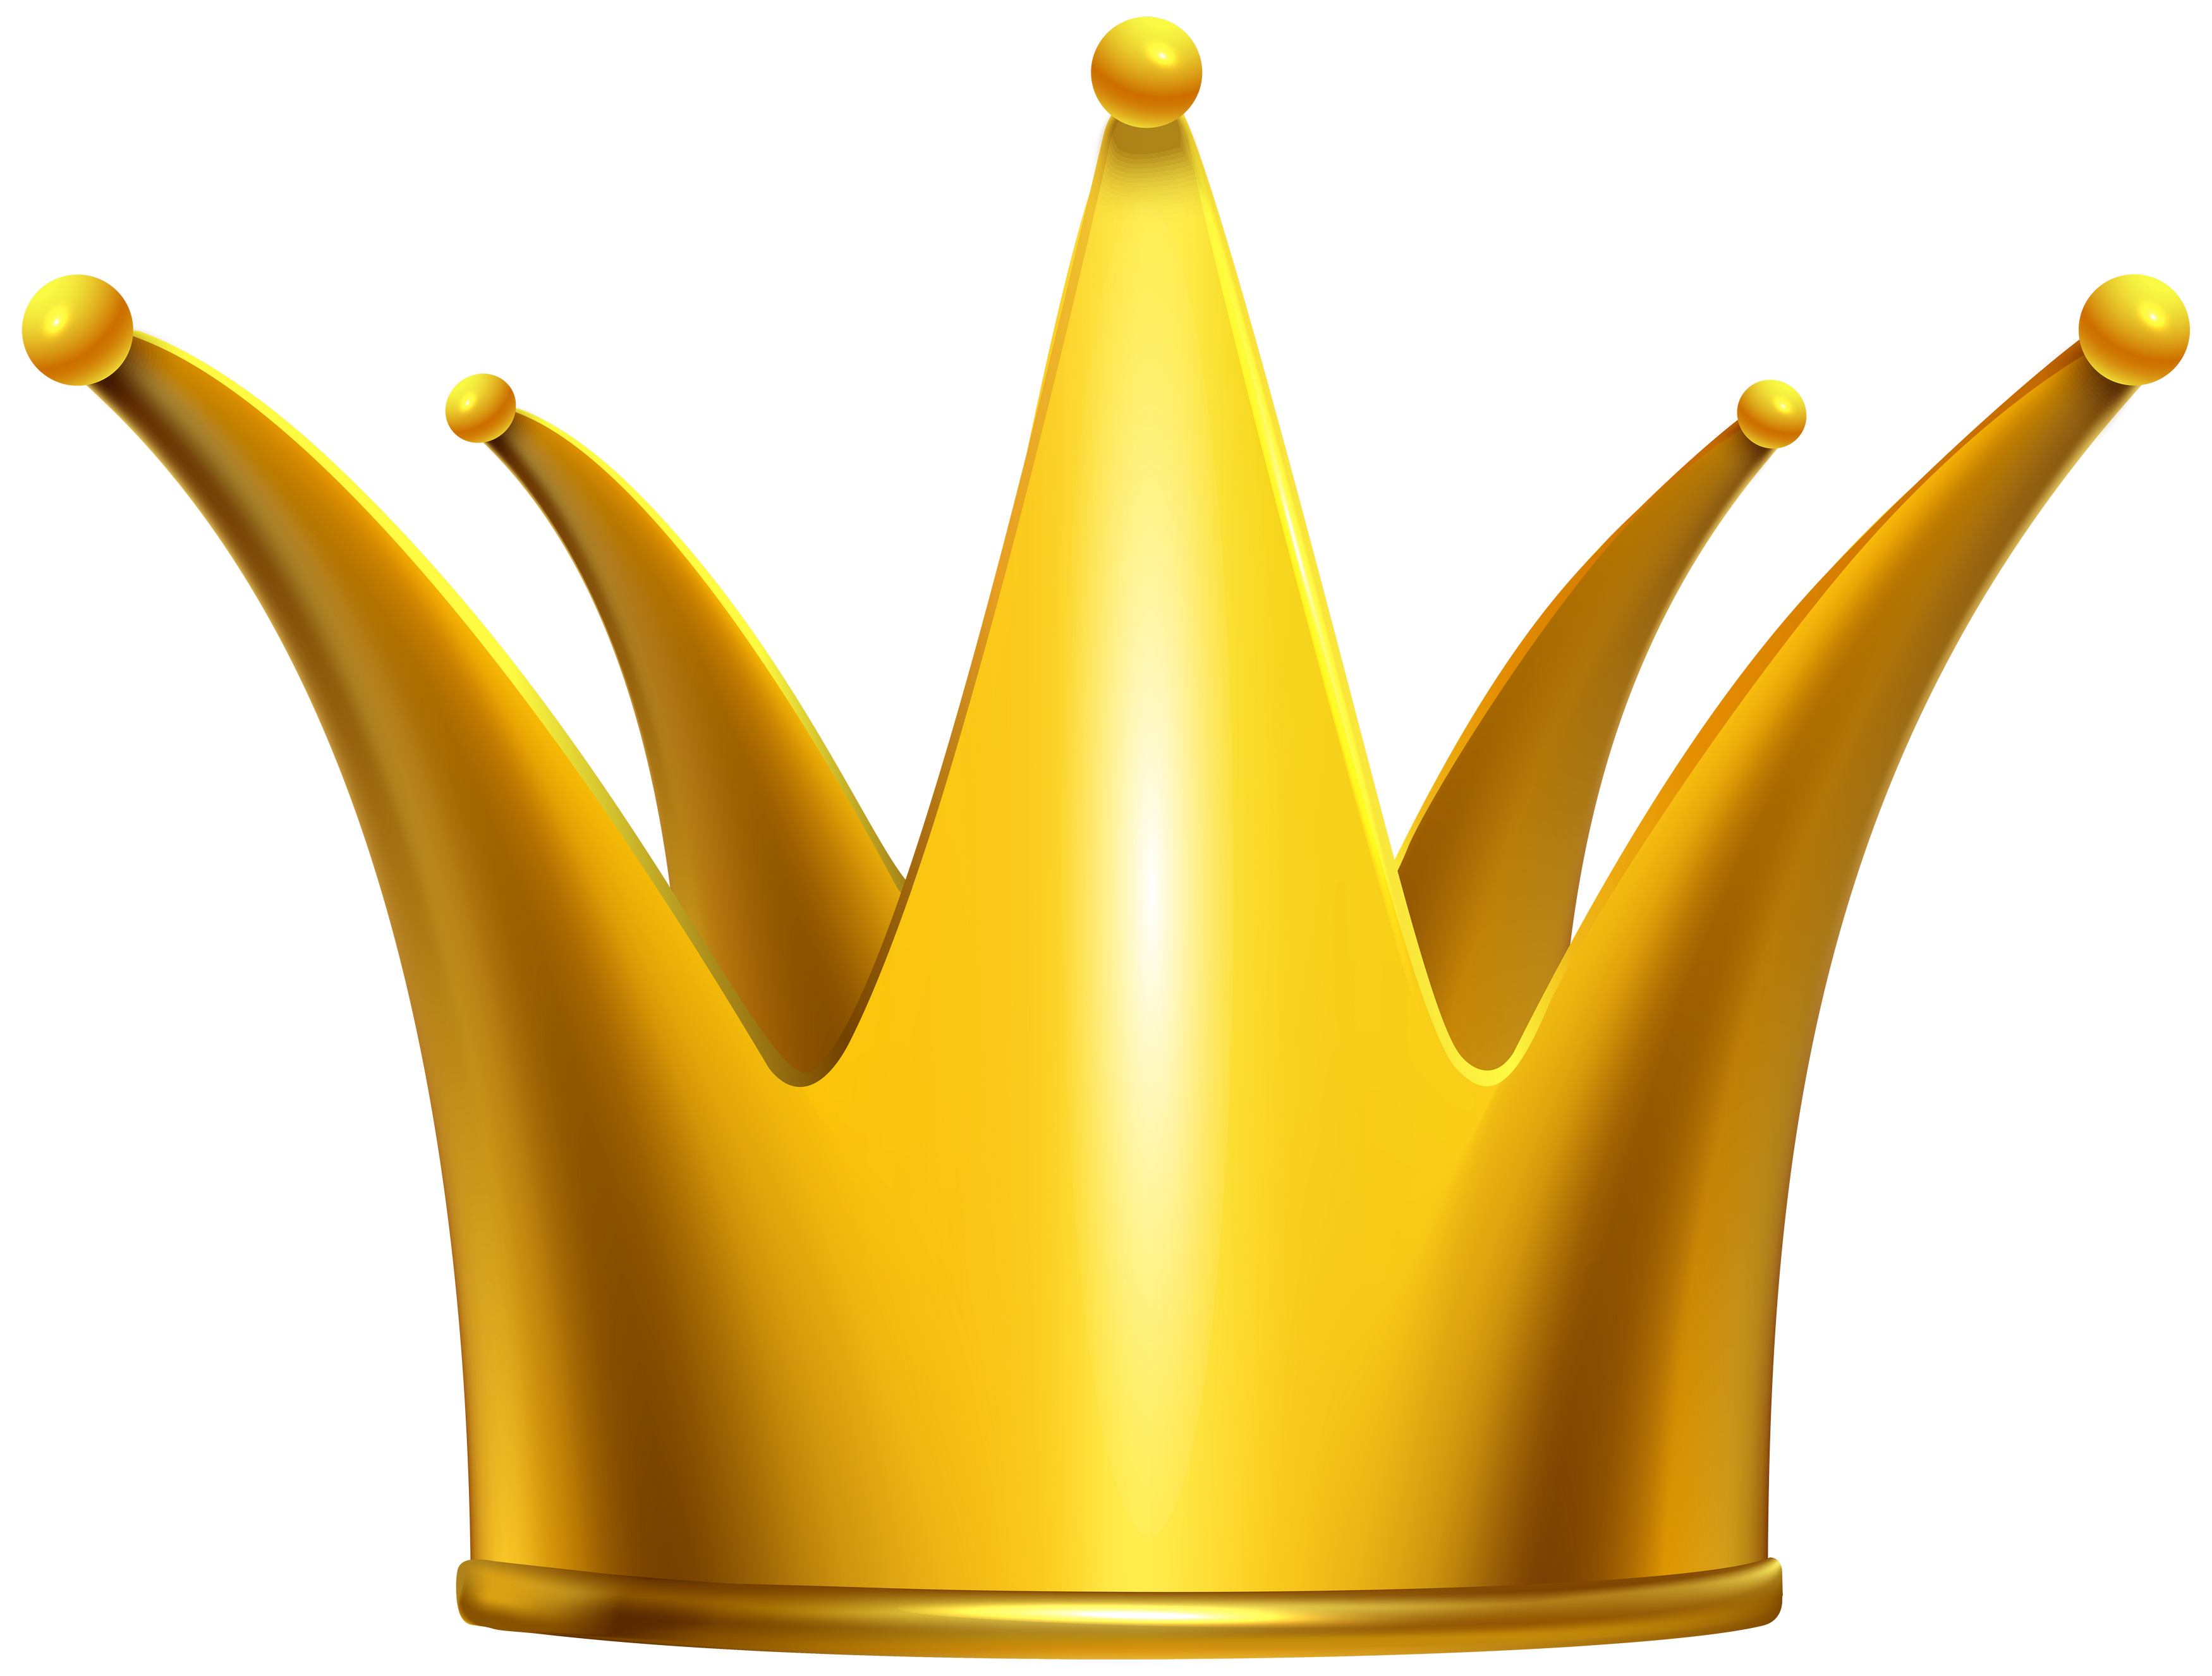 Gold Crown Png Image Crown Clip Art Crown Png Crown Pictures